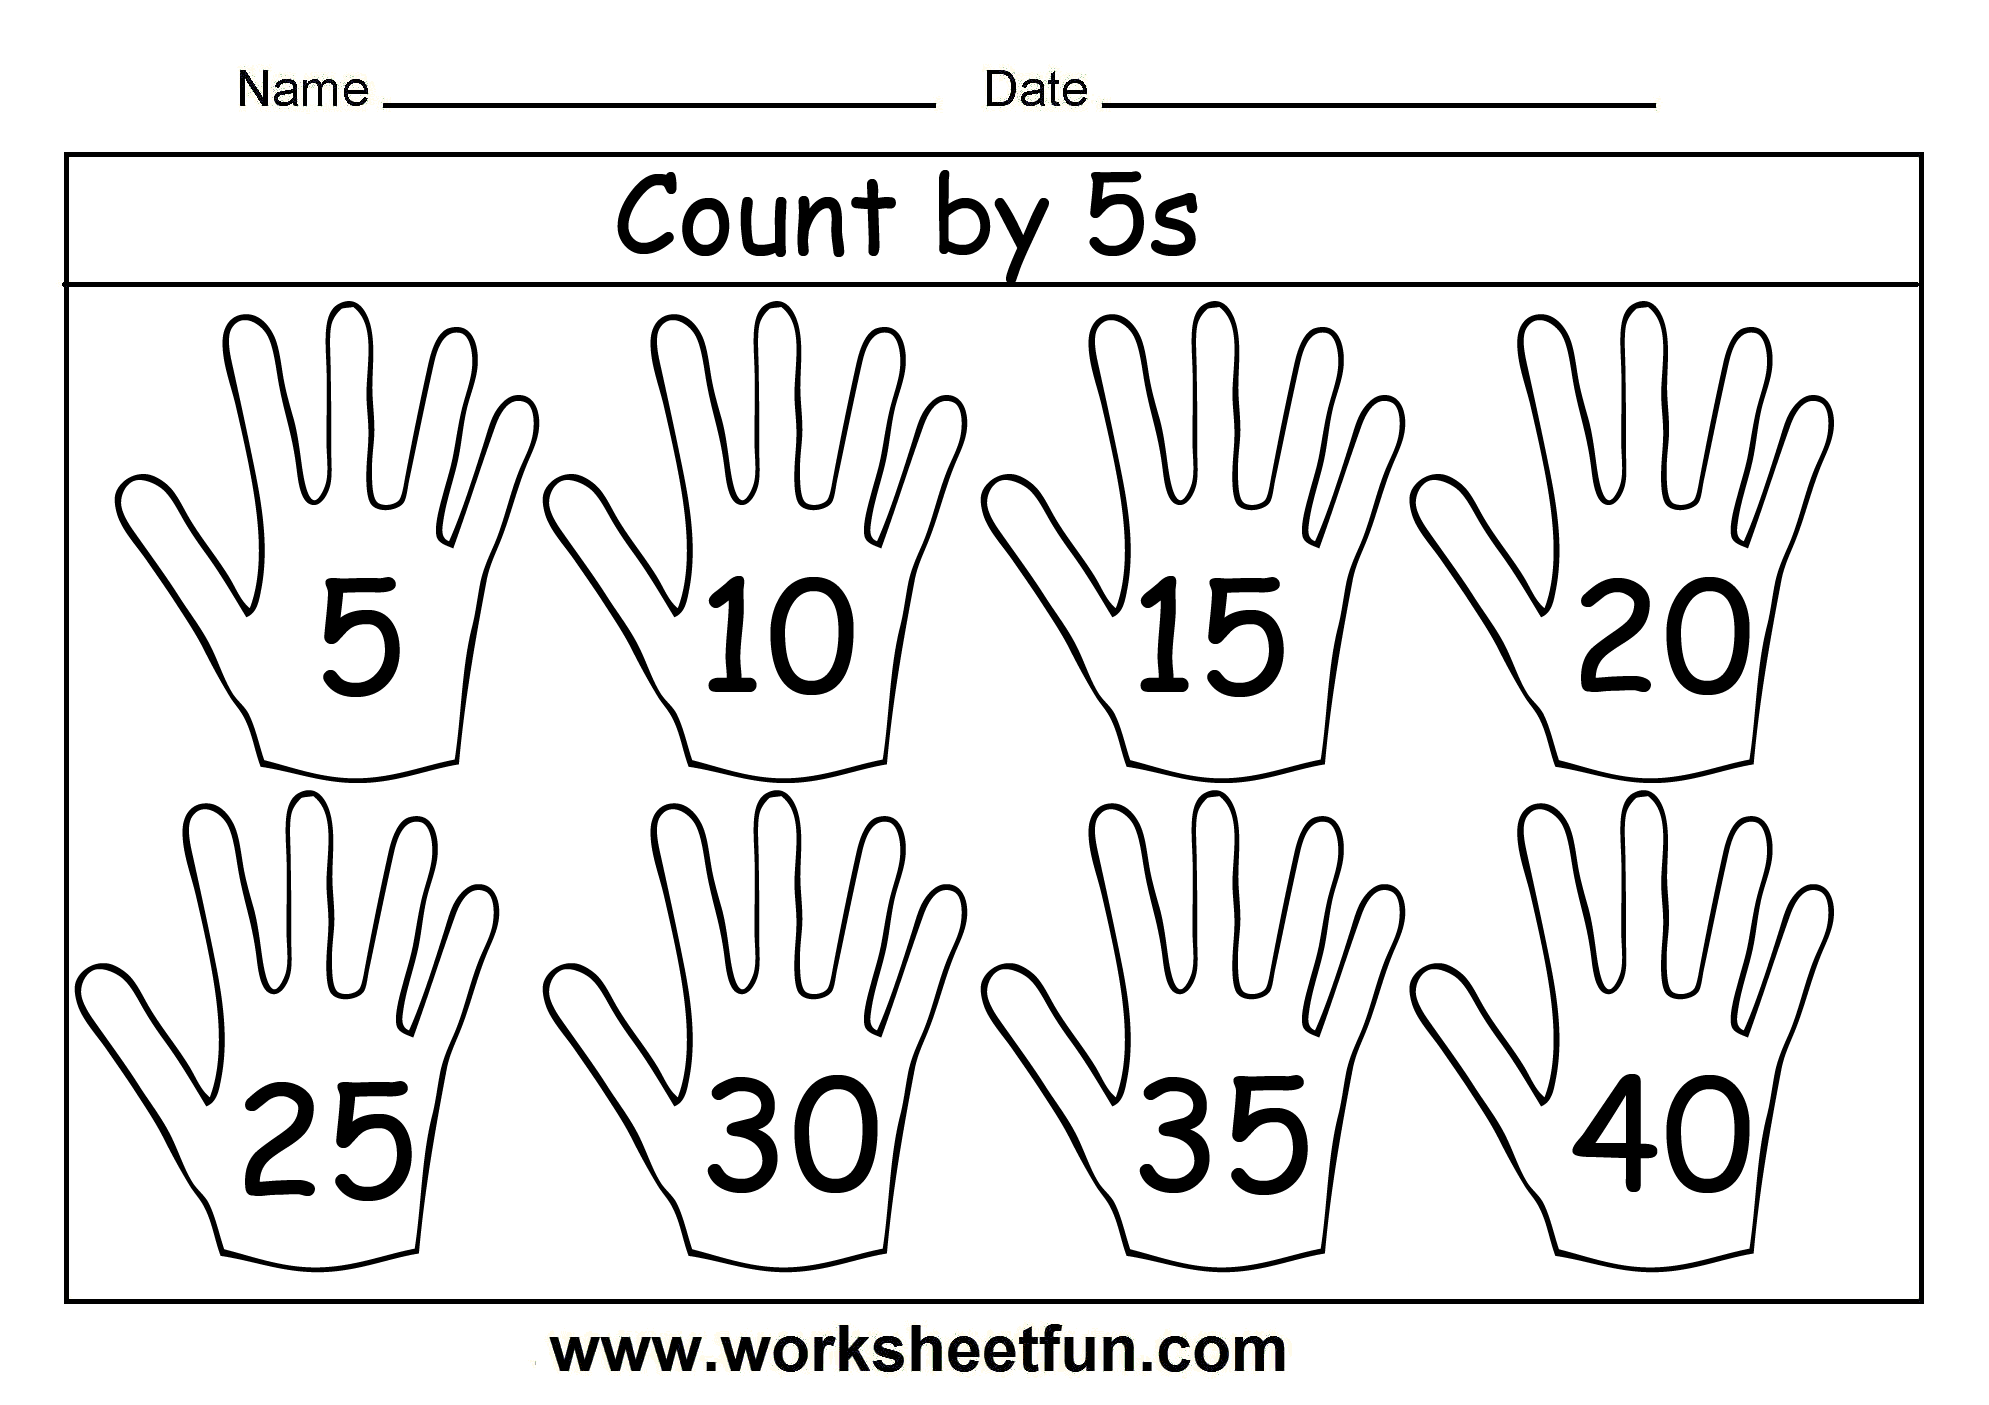 Count By 5s 3 Worksheets Free Printable Worksheets Worksheetfun